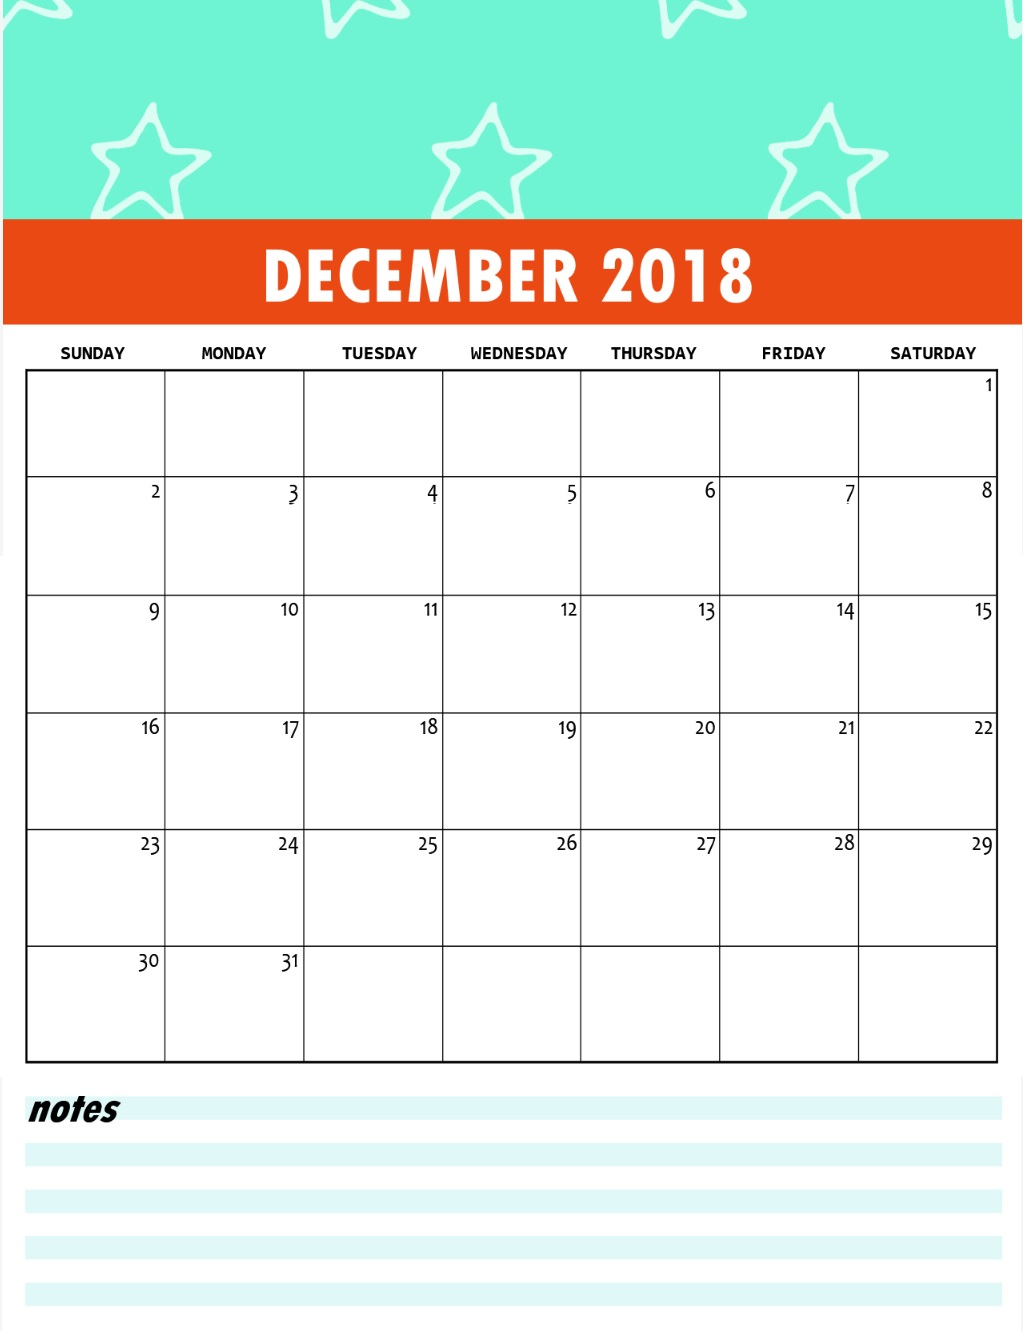 December 2018 Calendar Cute for Kids